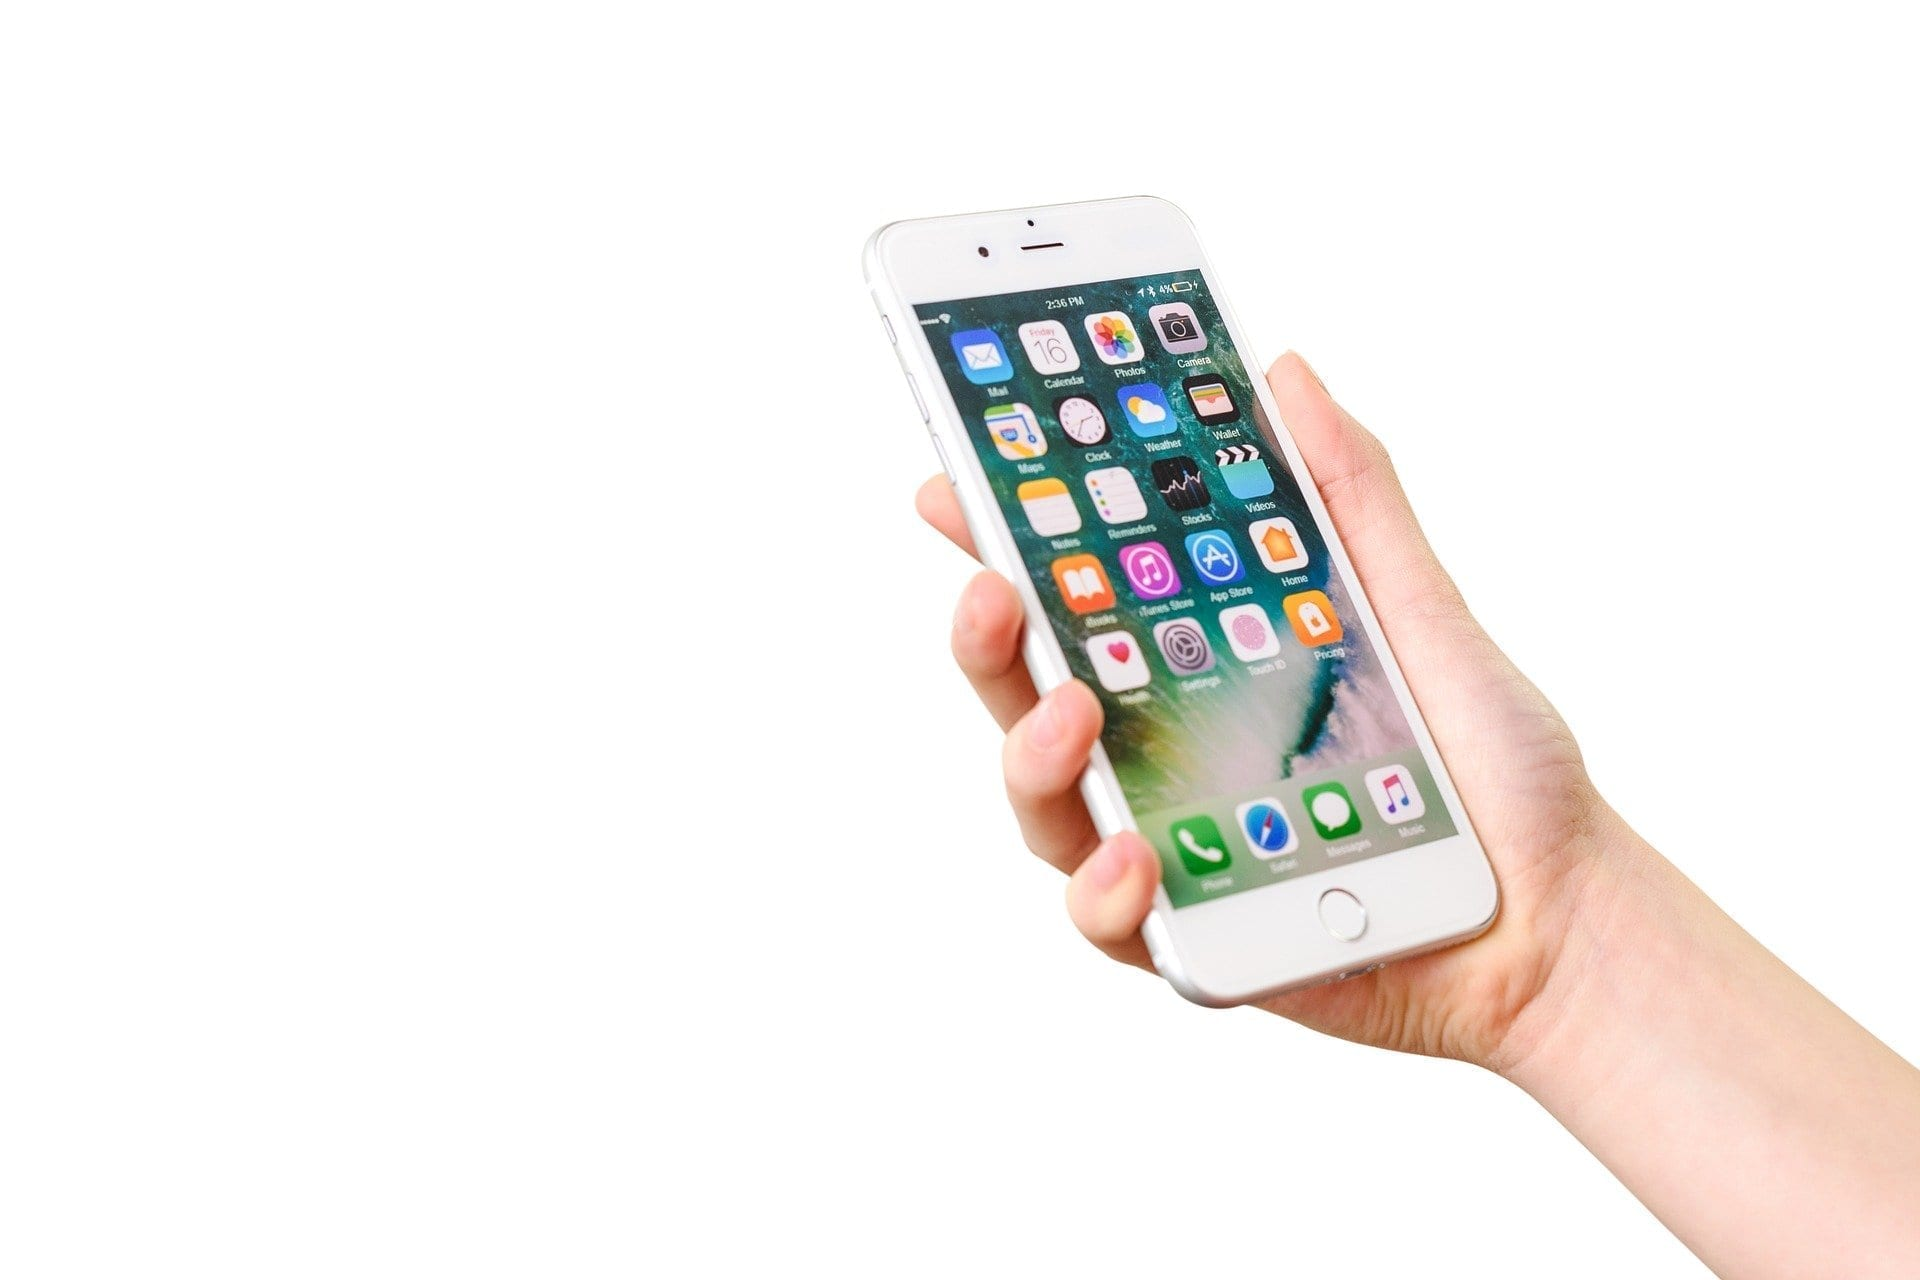 picture of a hand holding a iphone device